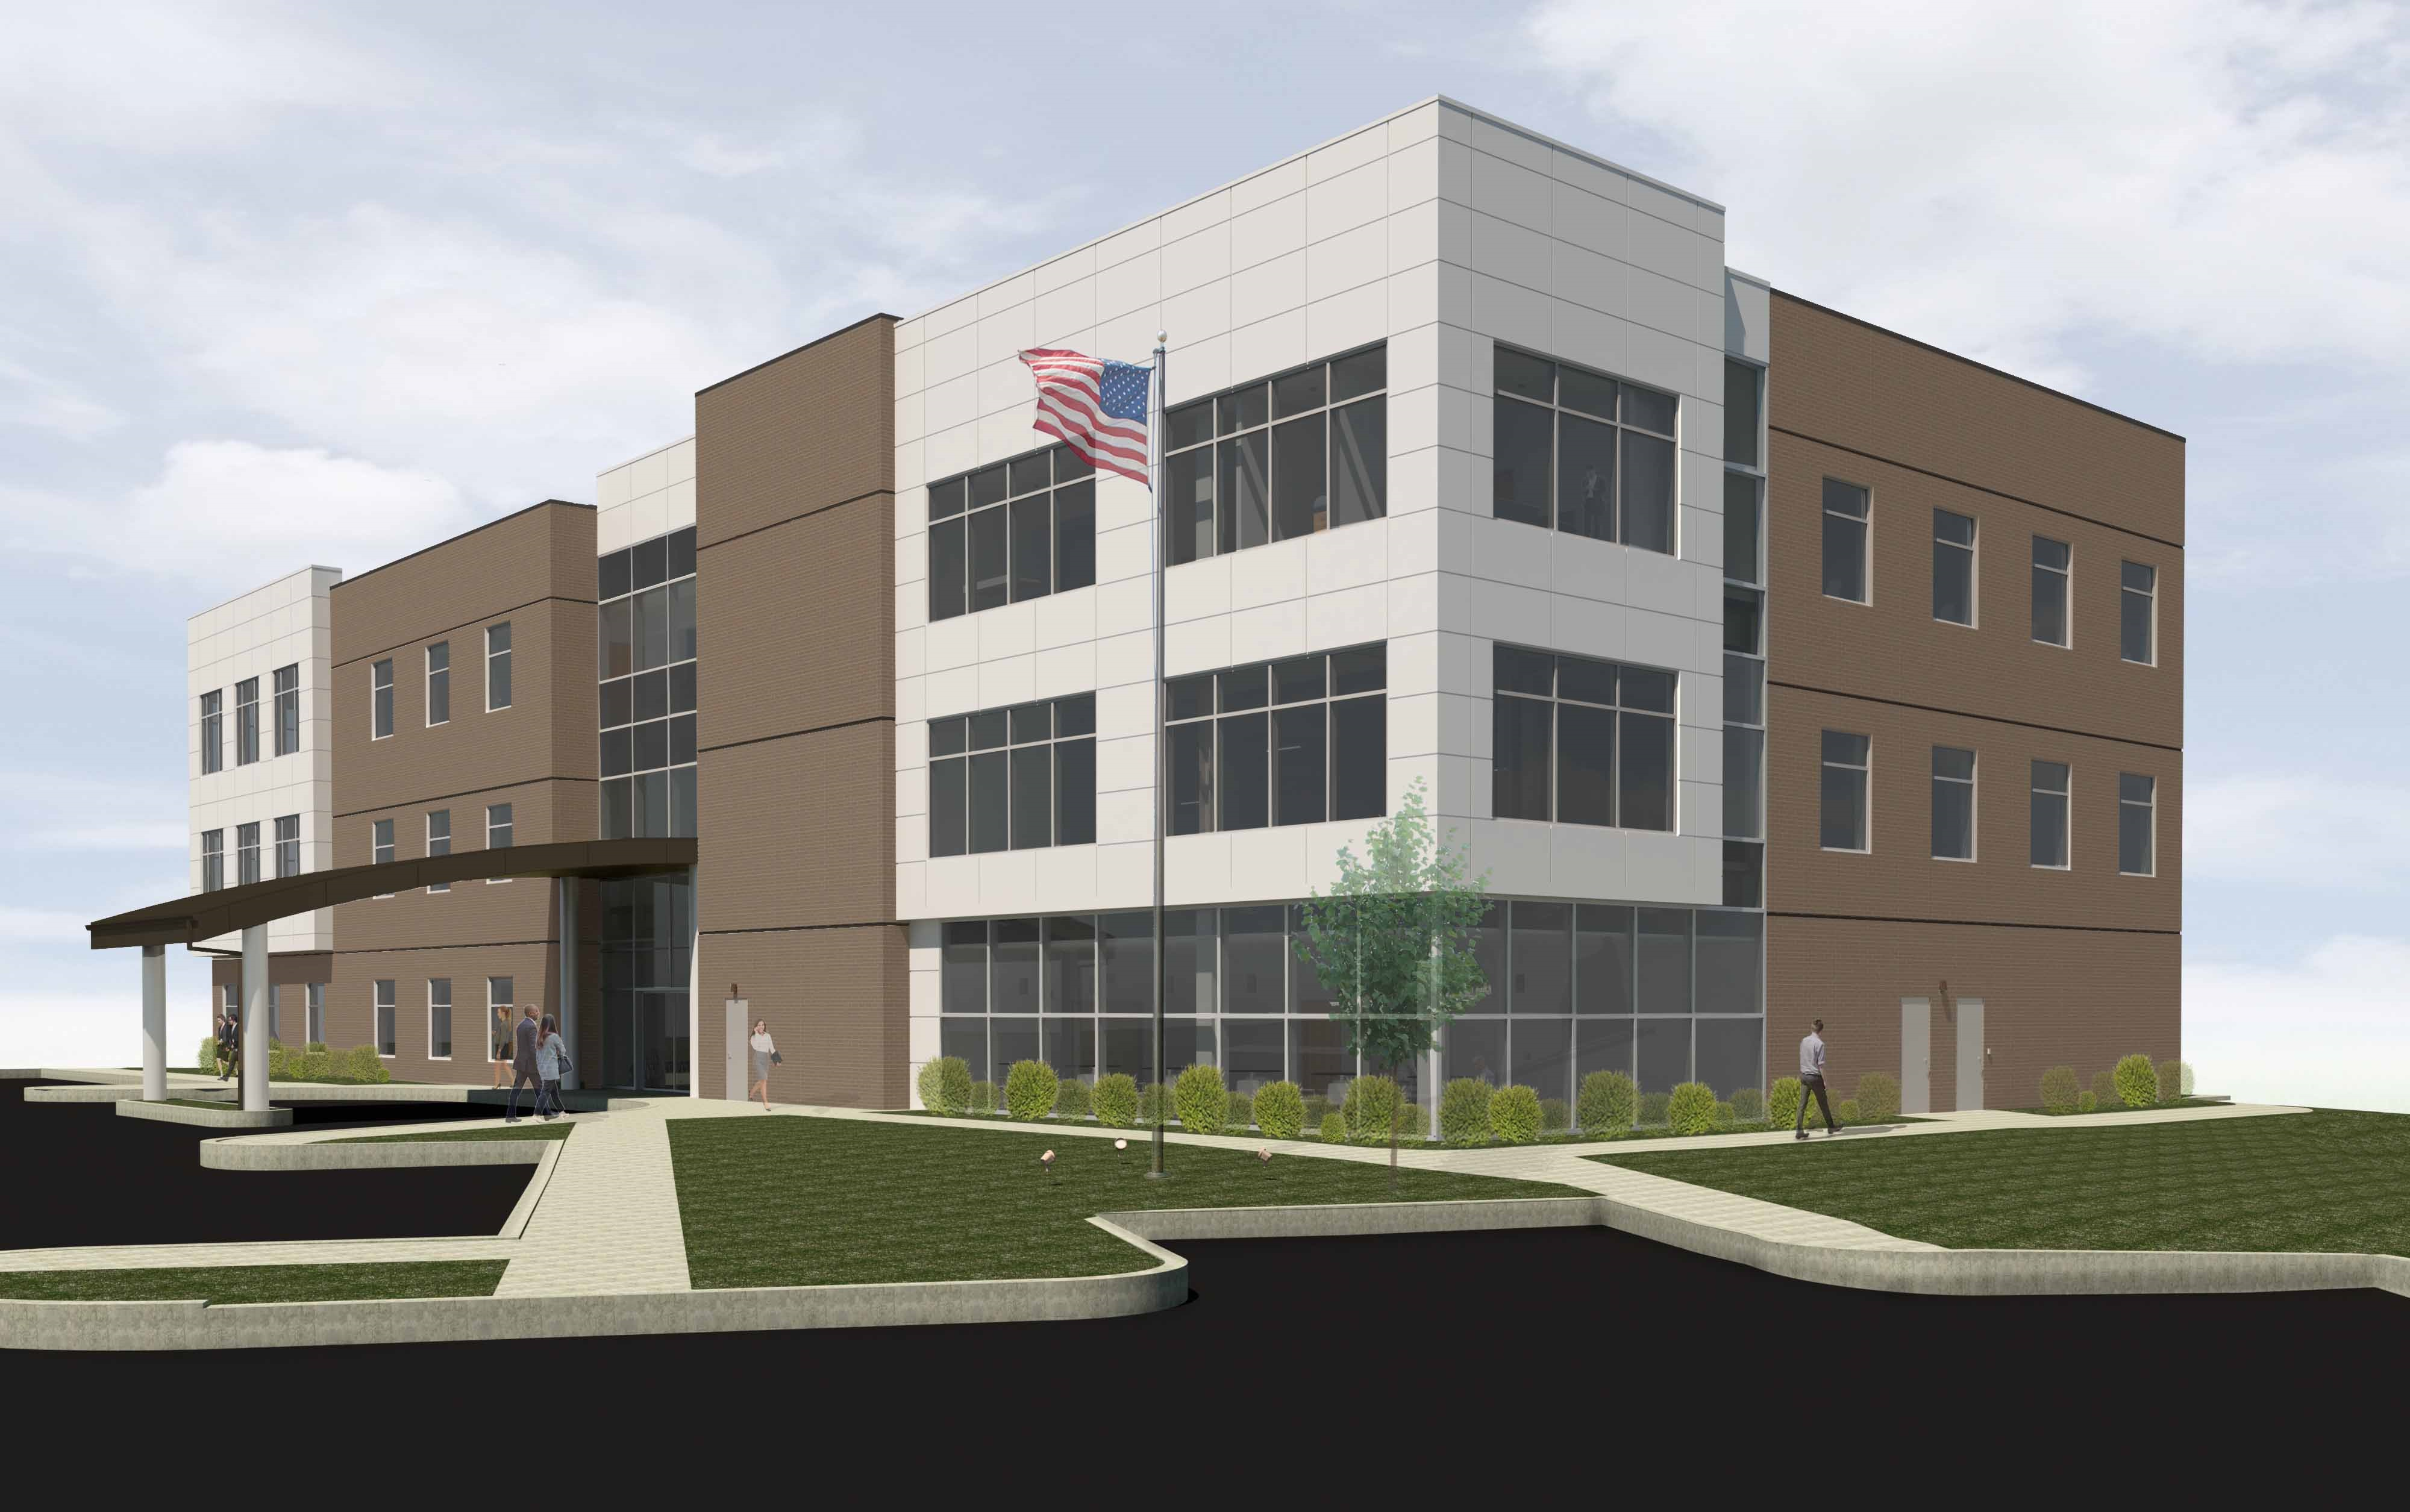 New 45,000-square-foot medical office building to open later this year